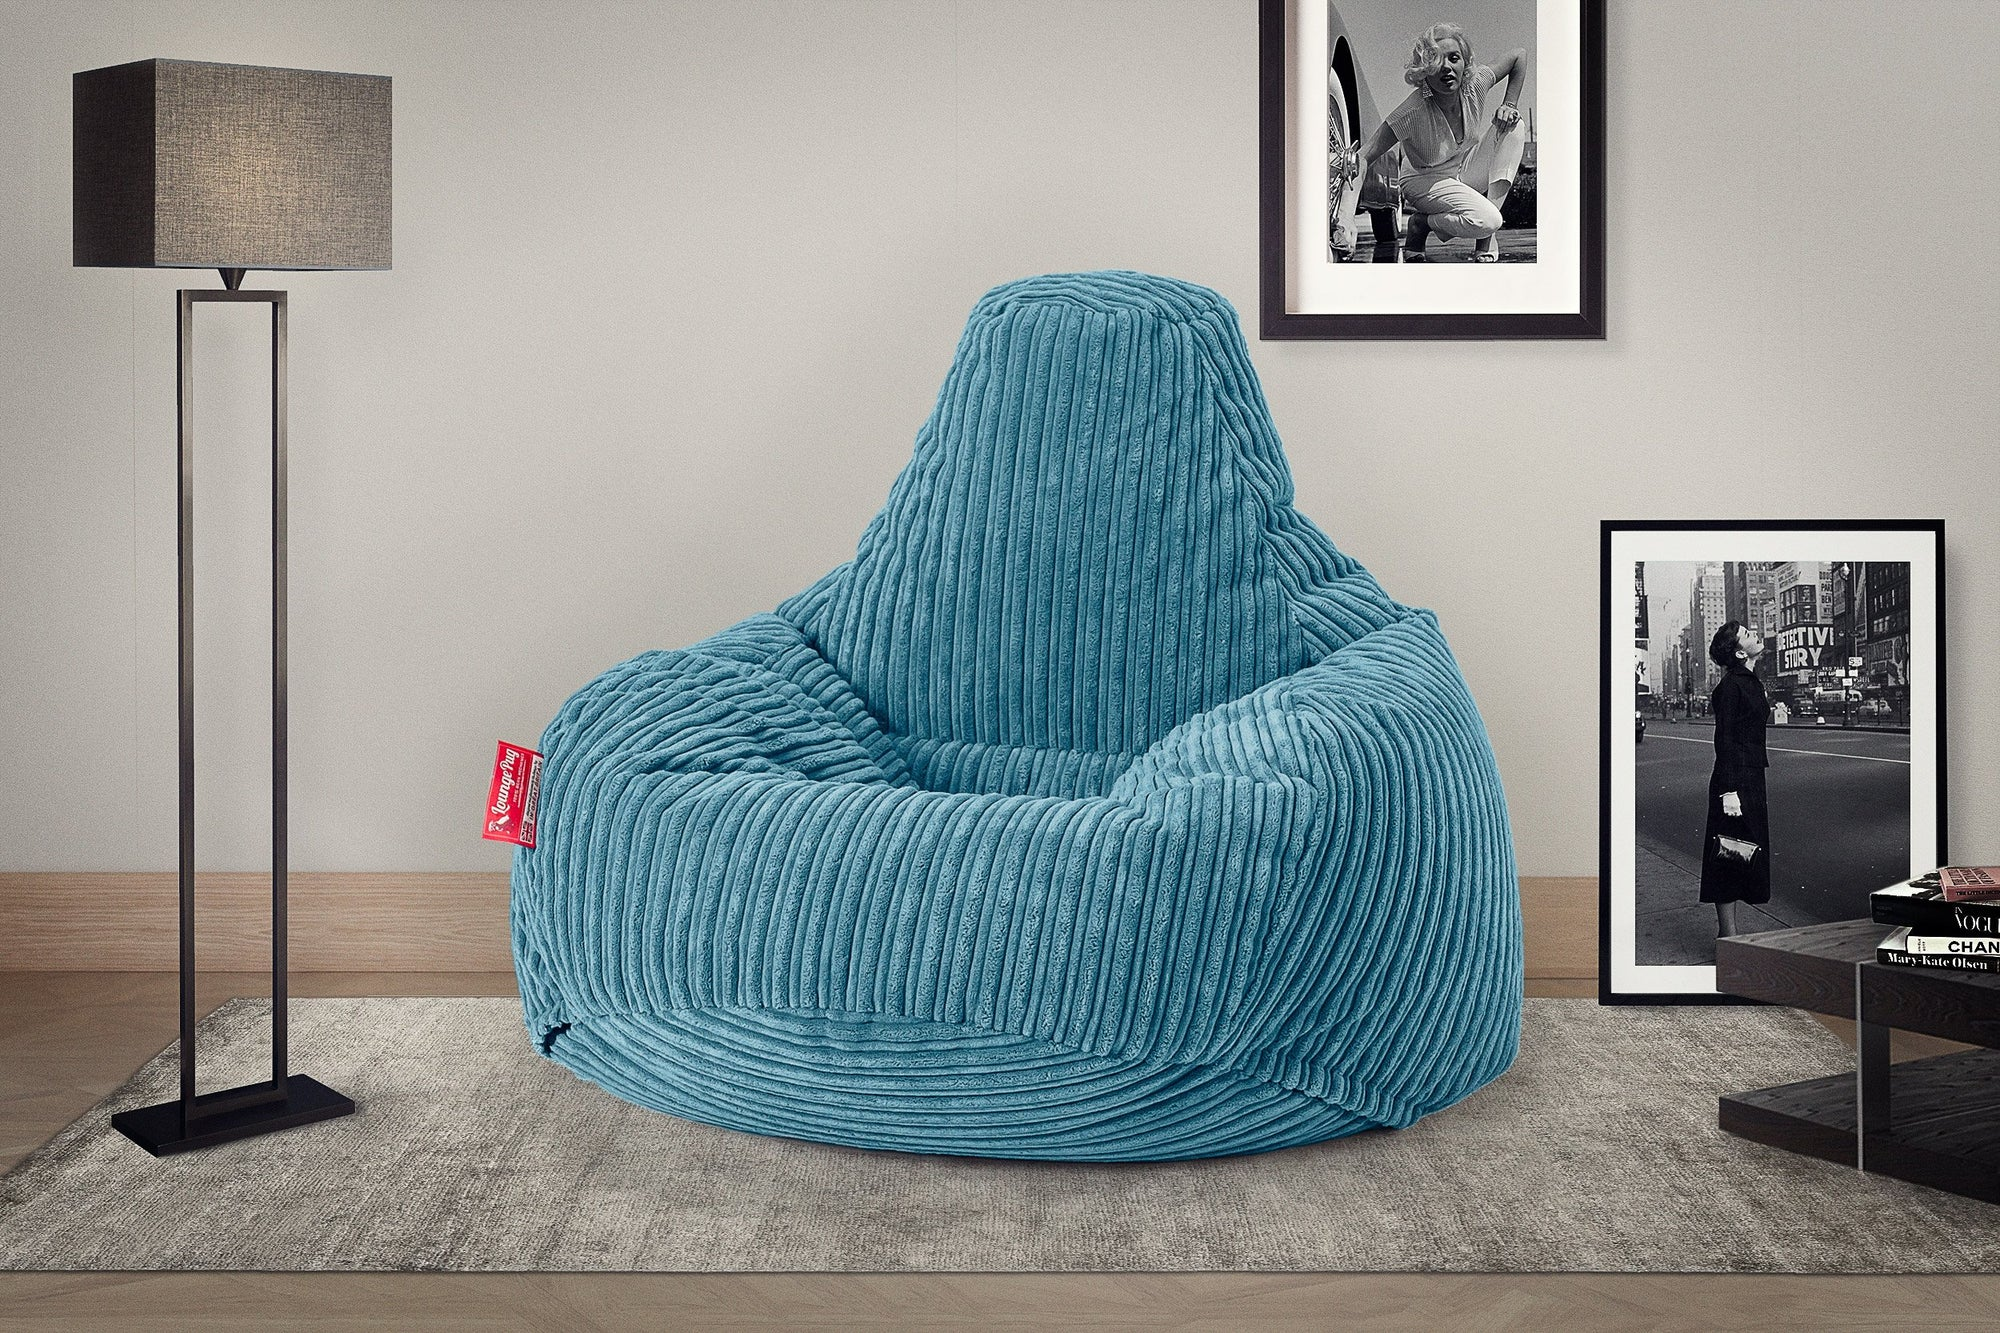 Teardrop Bean Bag